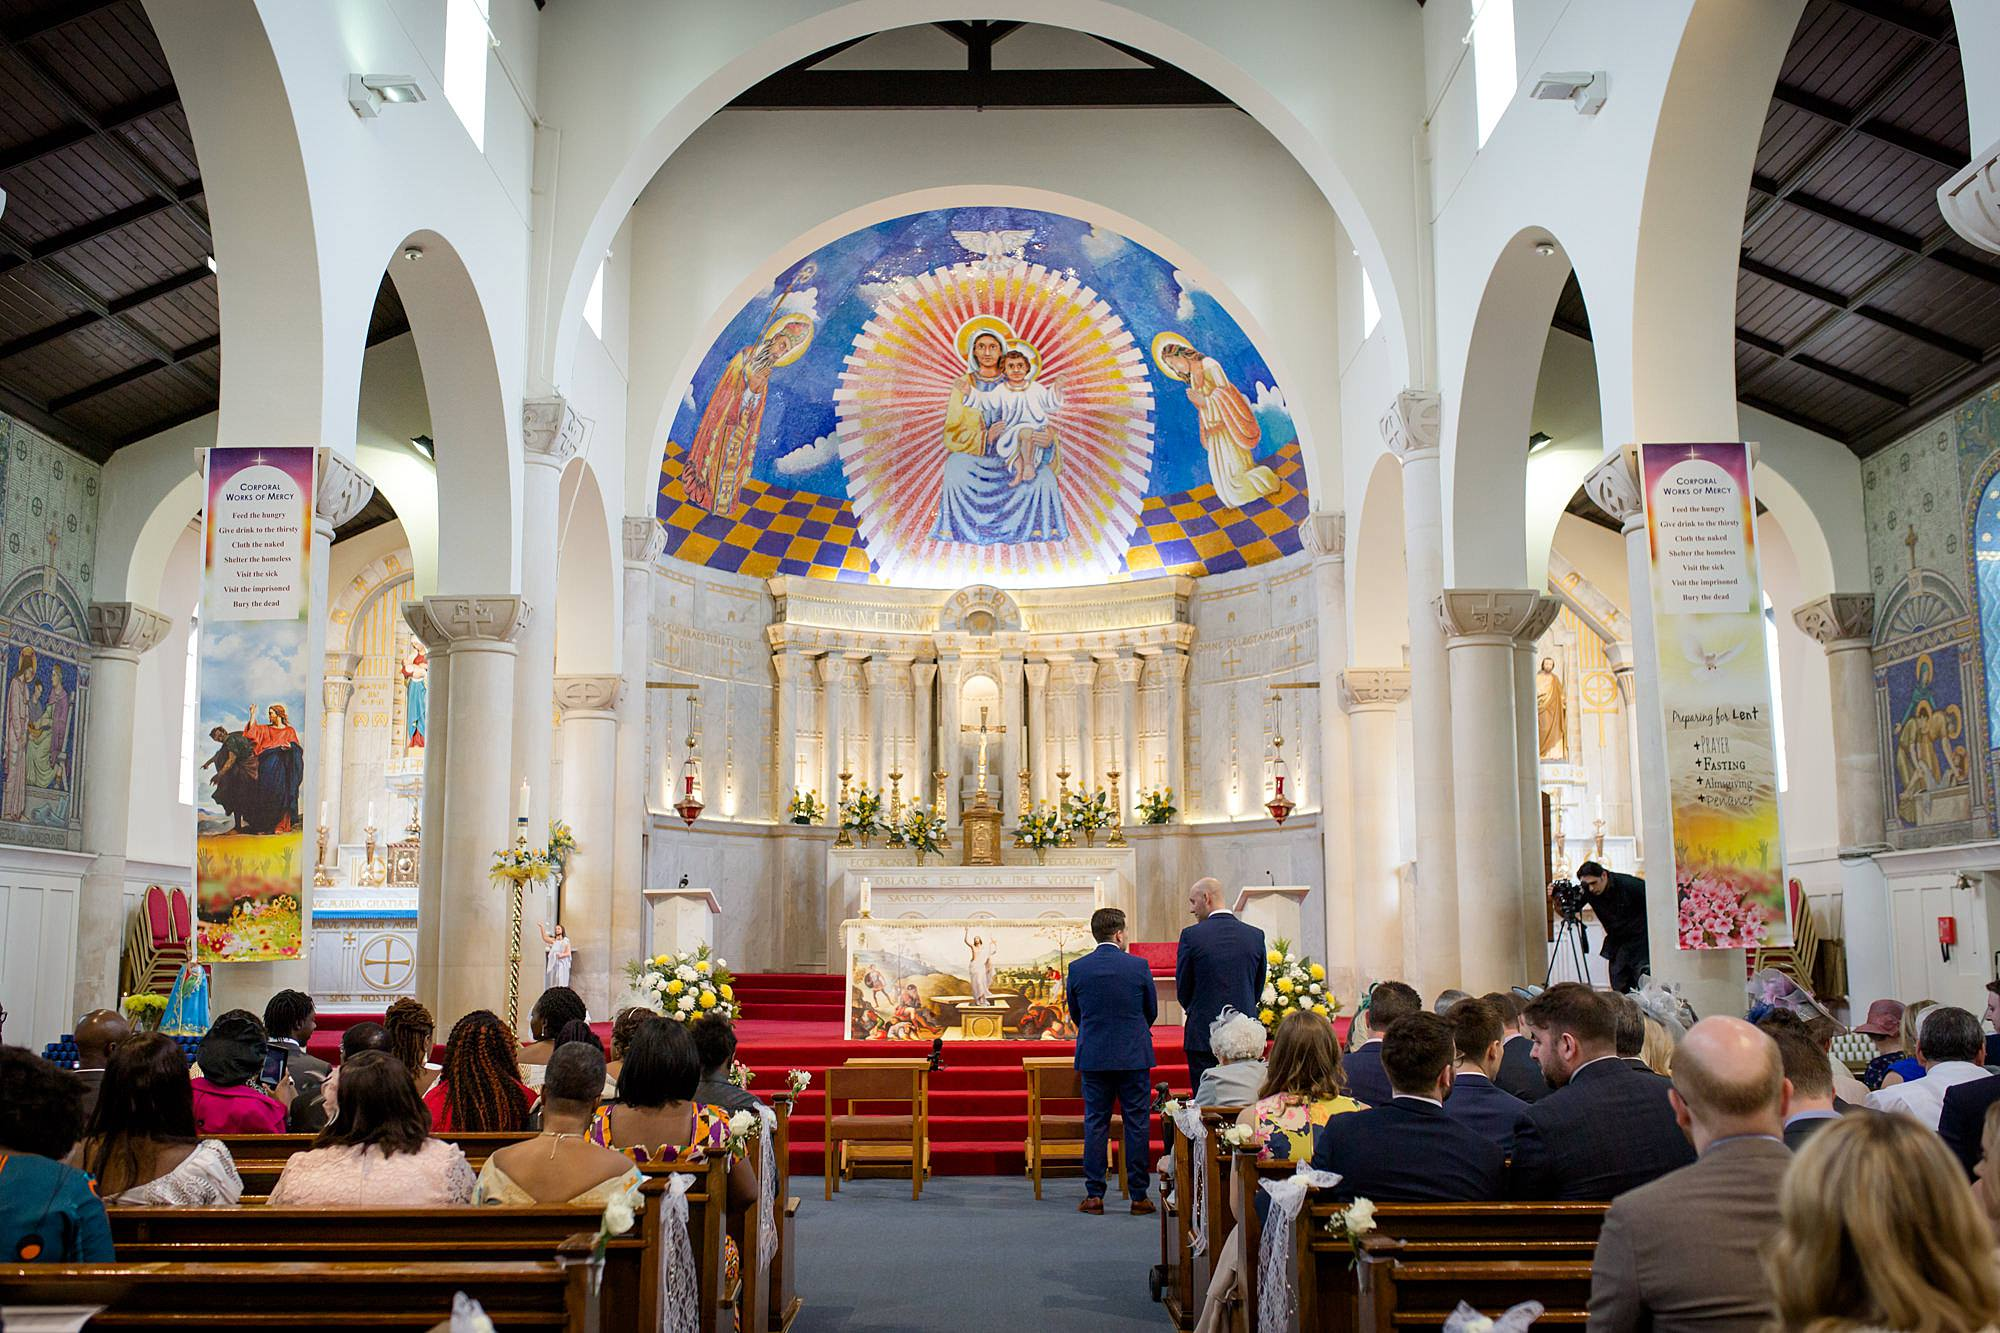 Bank of England Sports Centre wedding church interior